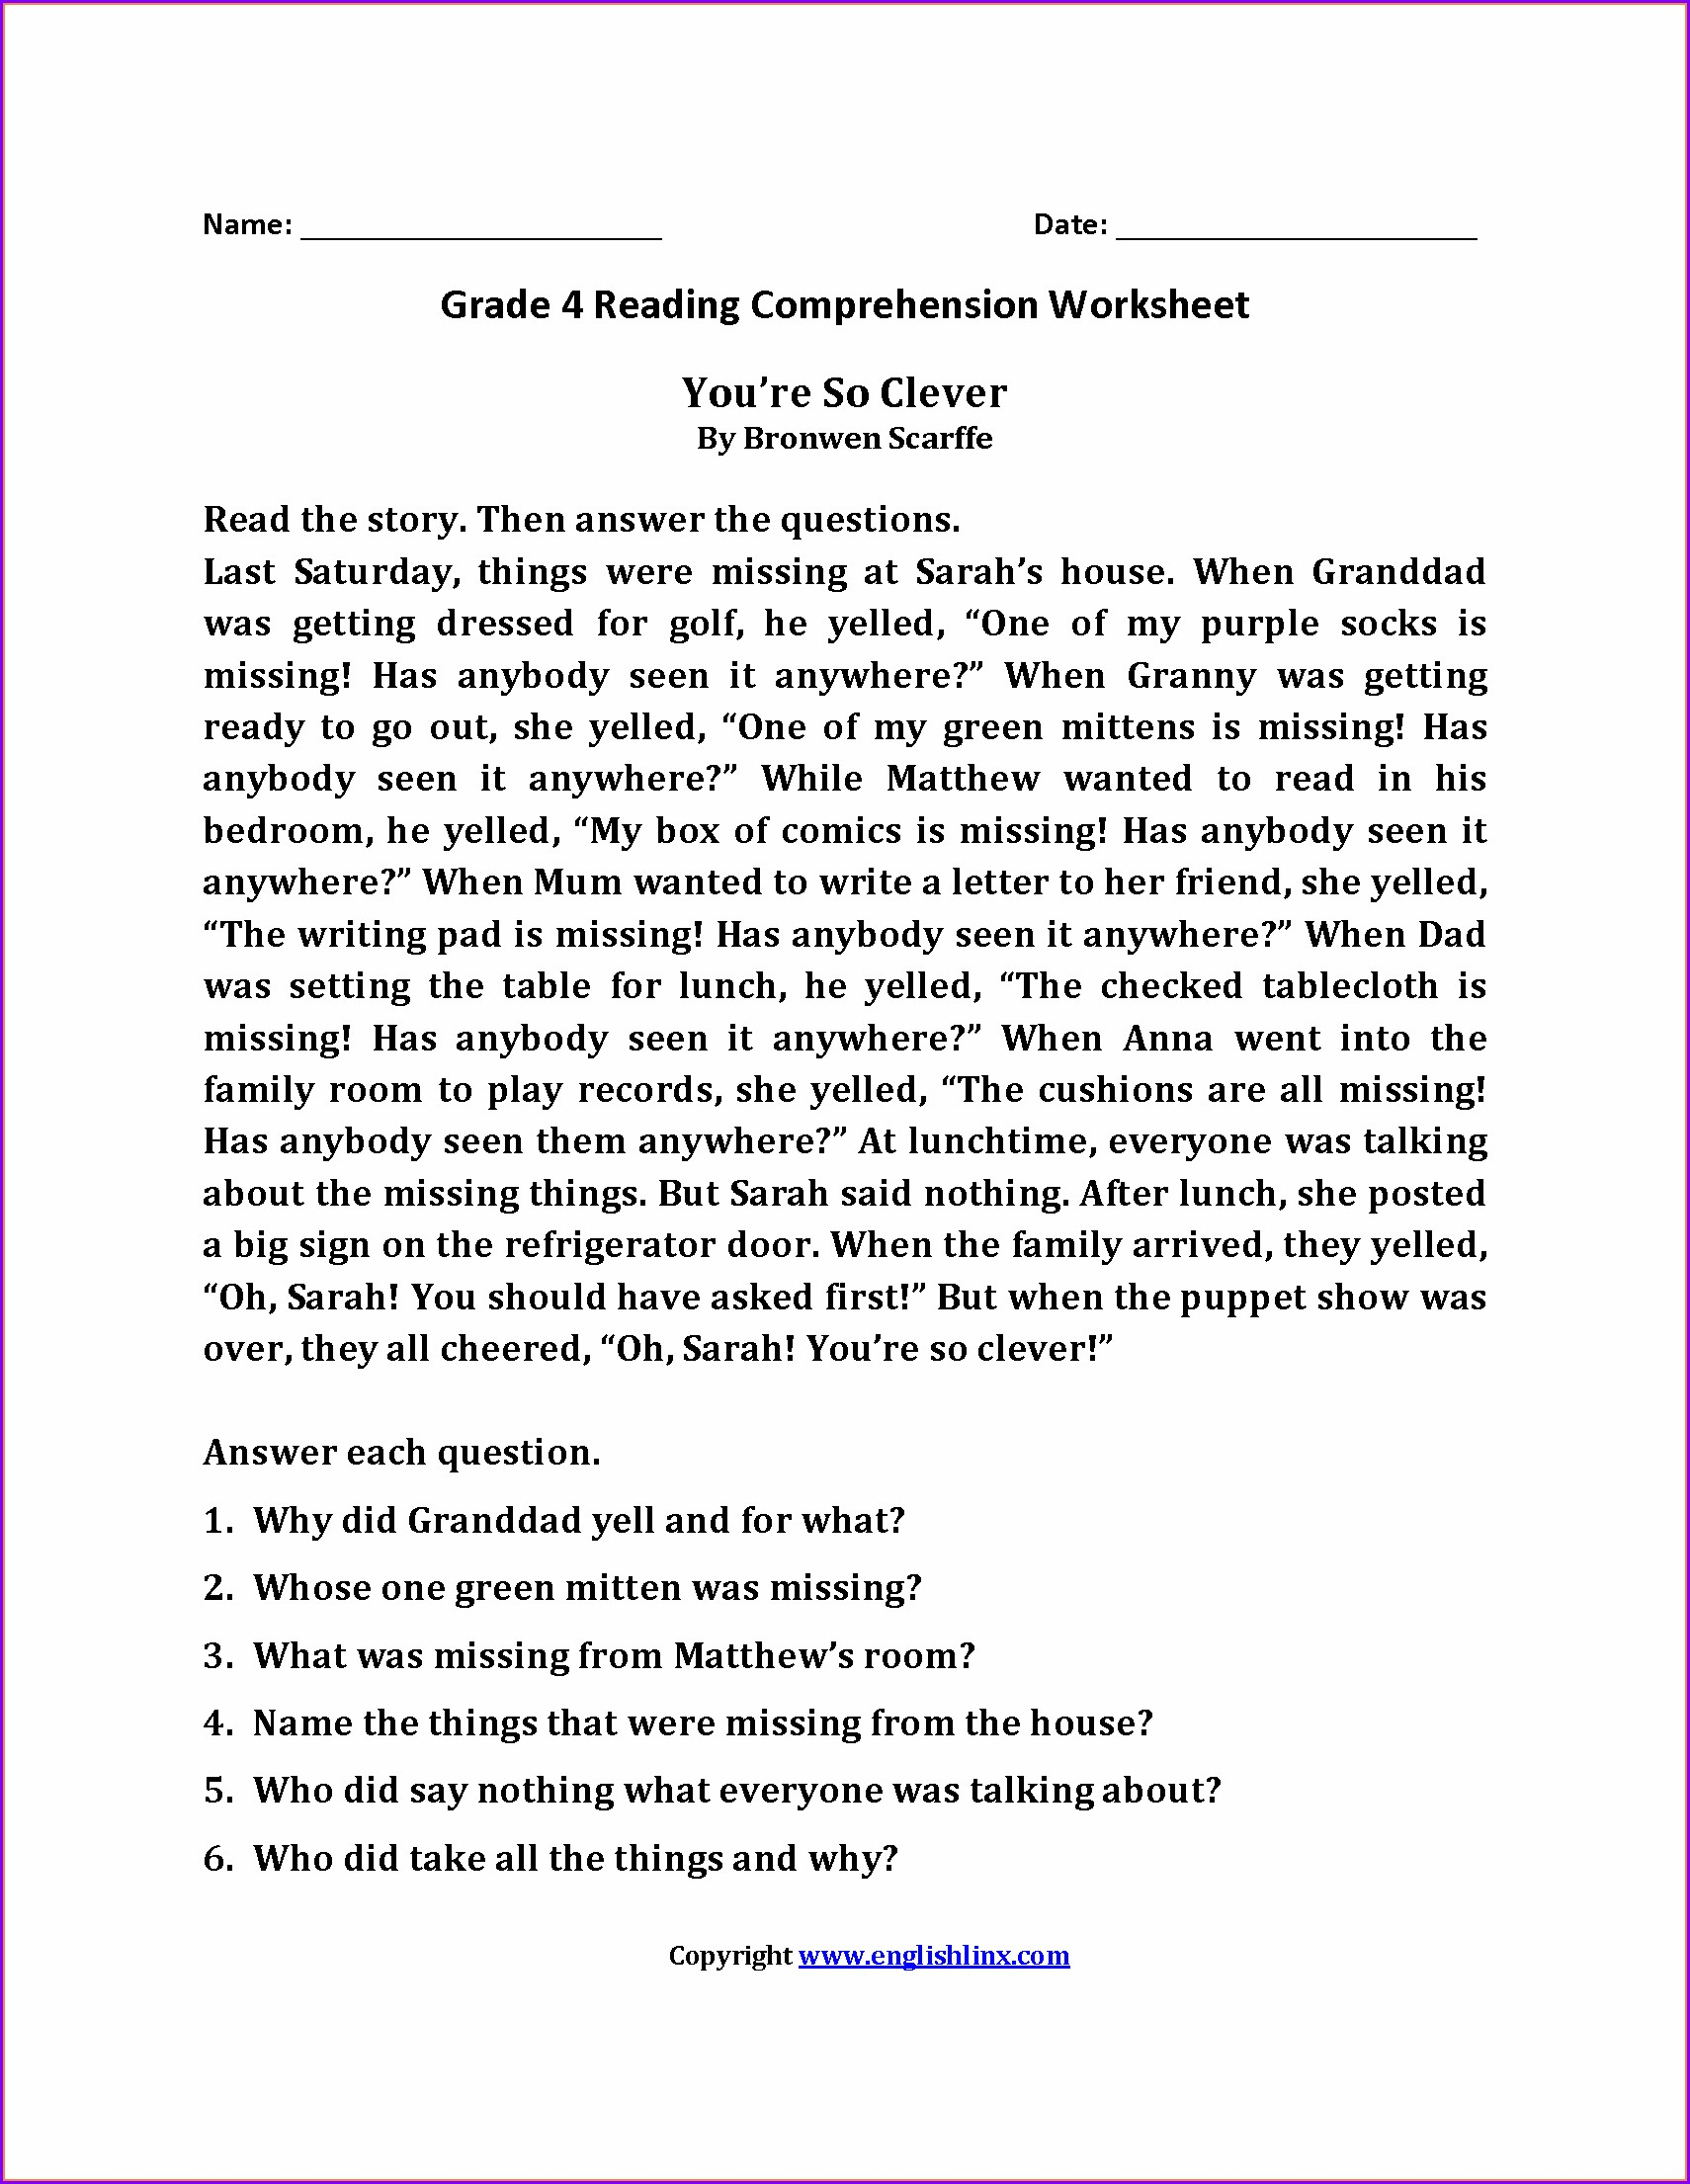 Free Reading Comprehension Grade 4 Worksheets